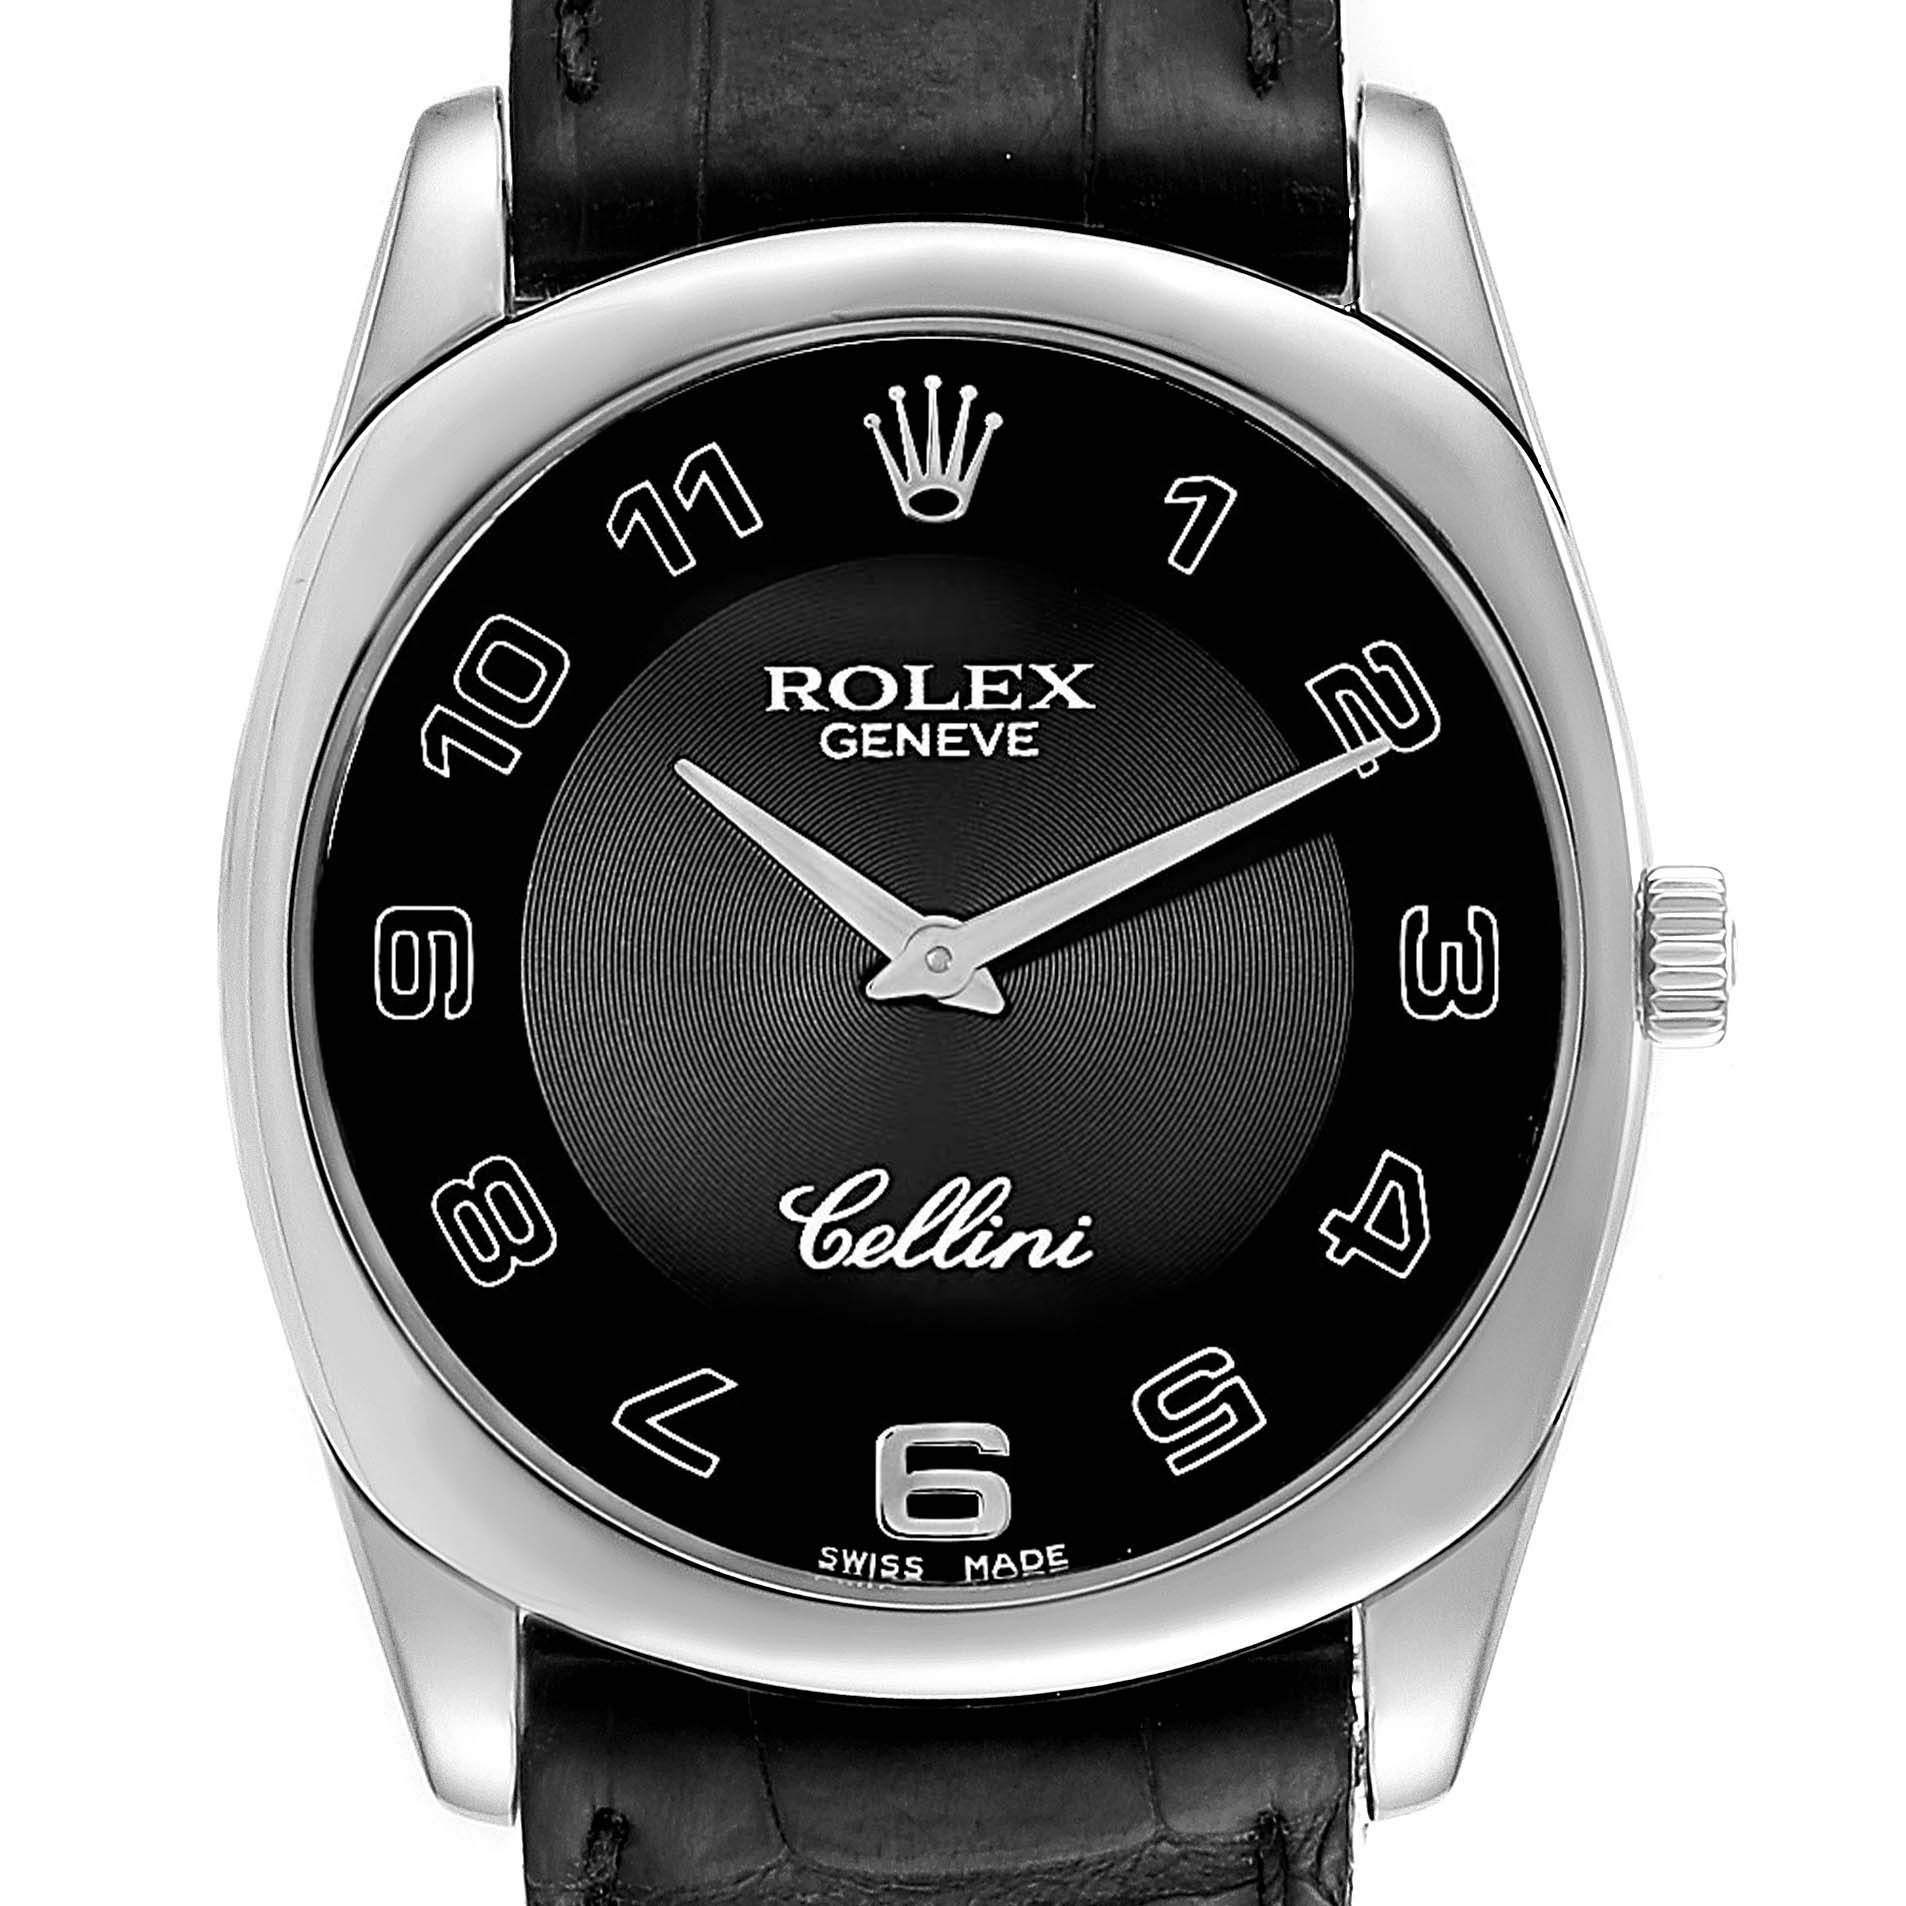 Rolex Cellini Danaos 18k White Gold Black Dial Unisex Watch 4233